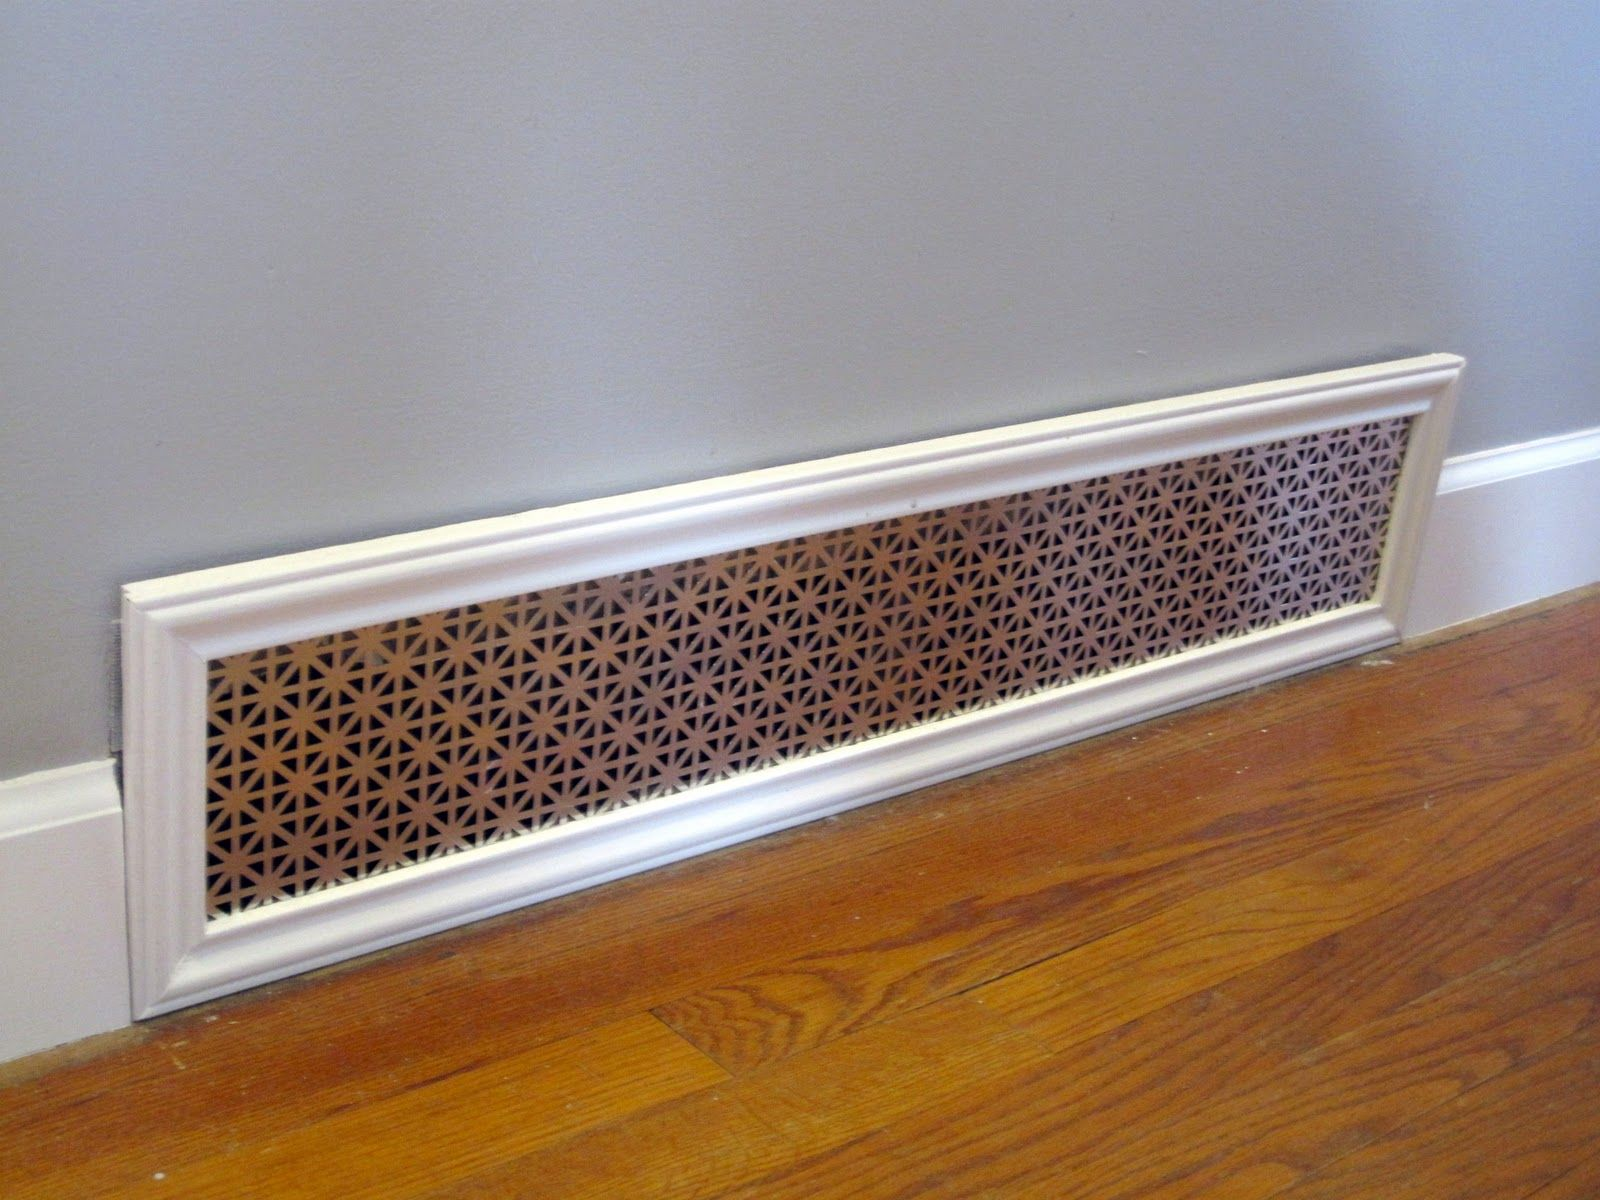 Decorative Wall Vent Covers Wall vents, Air vent covers